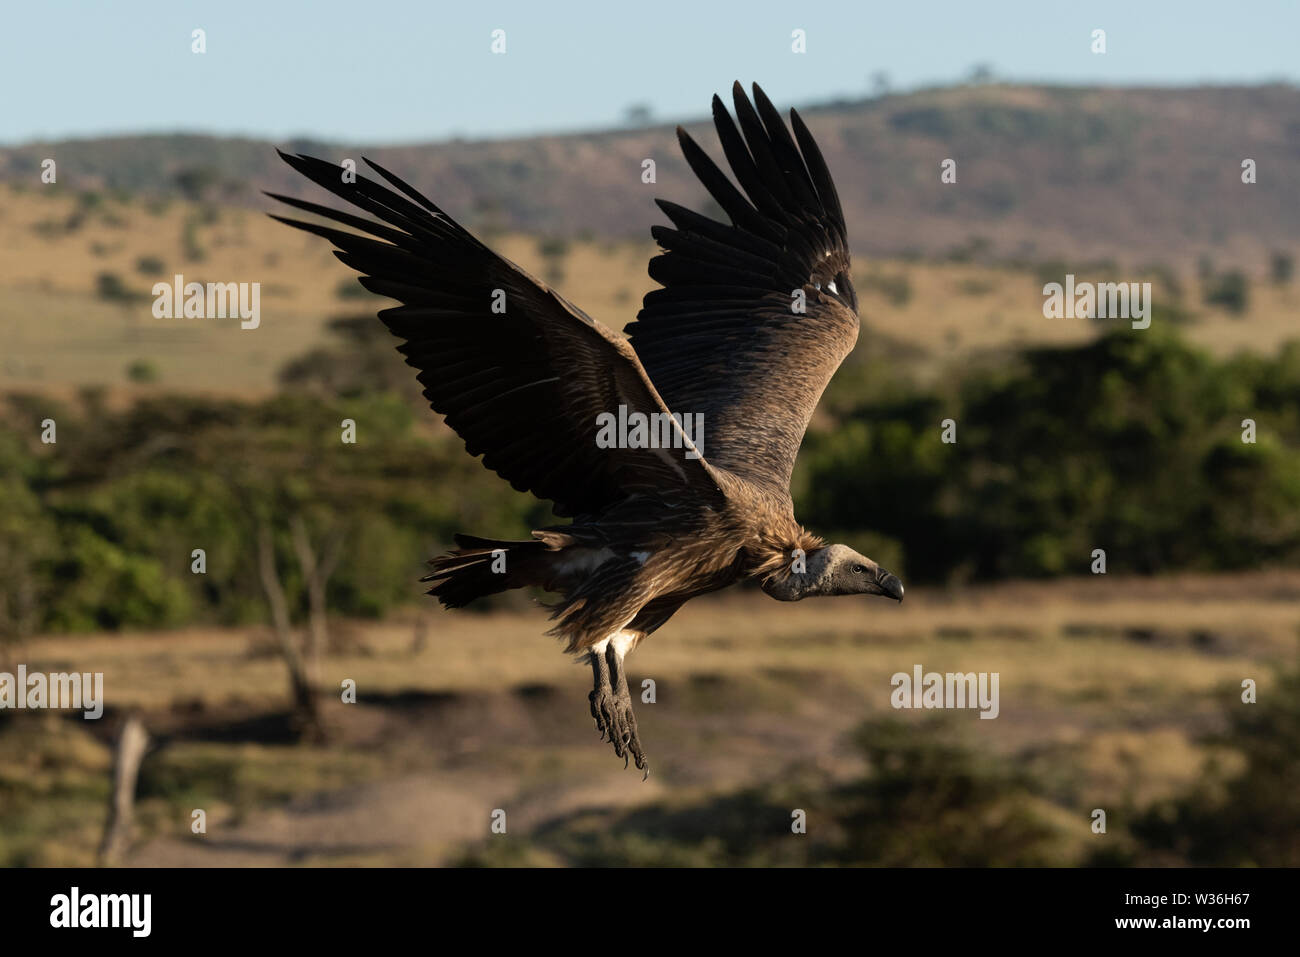 African white-backed vulture coming in to land - Stock Image